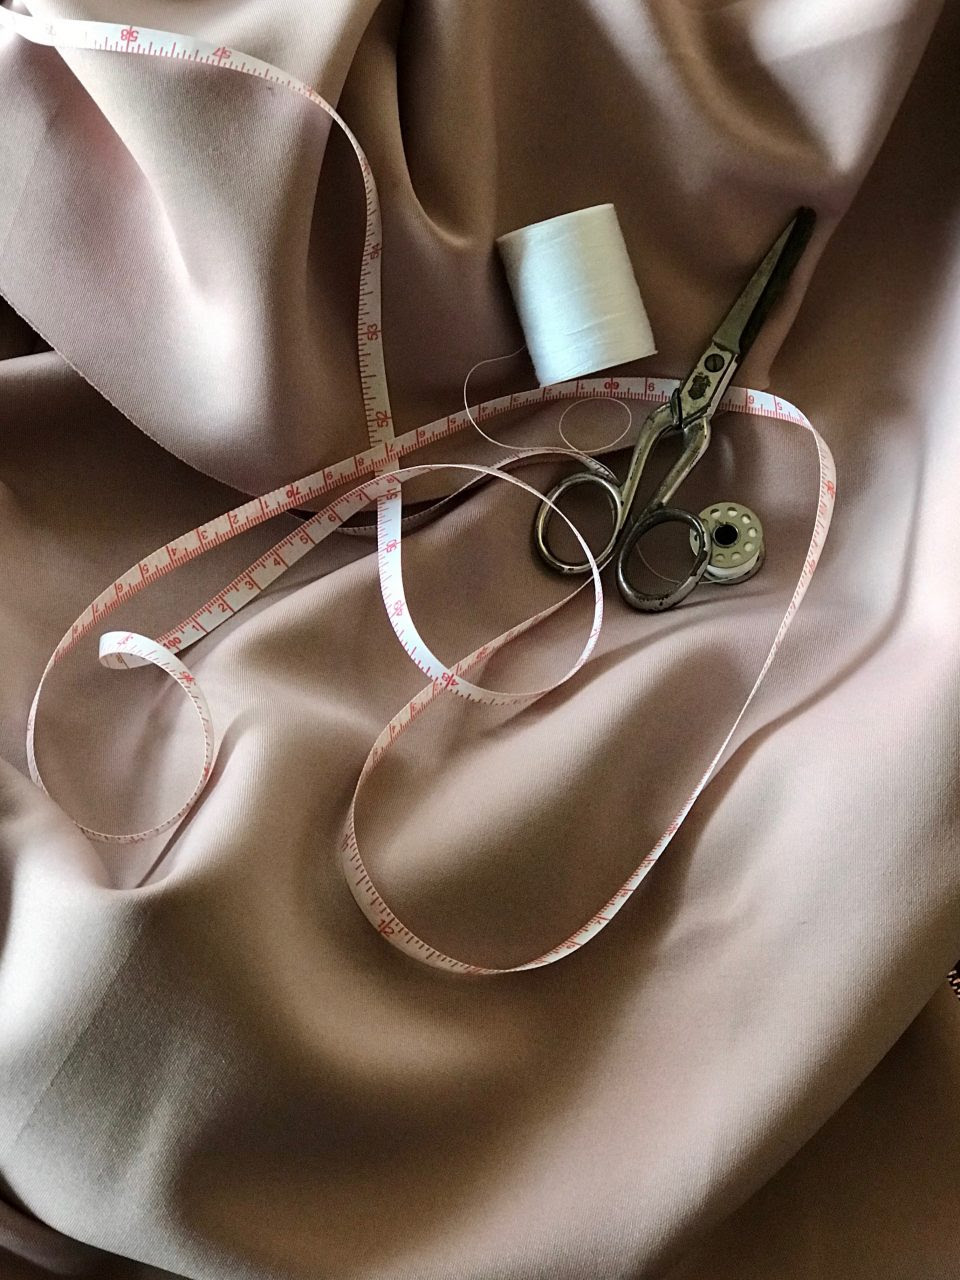 sewing implements on satin